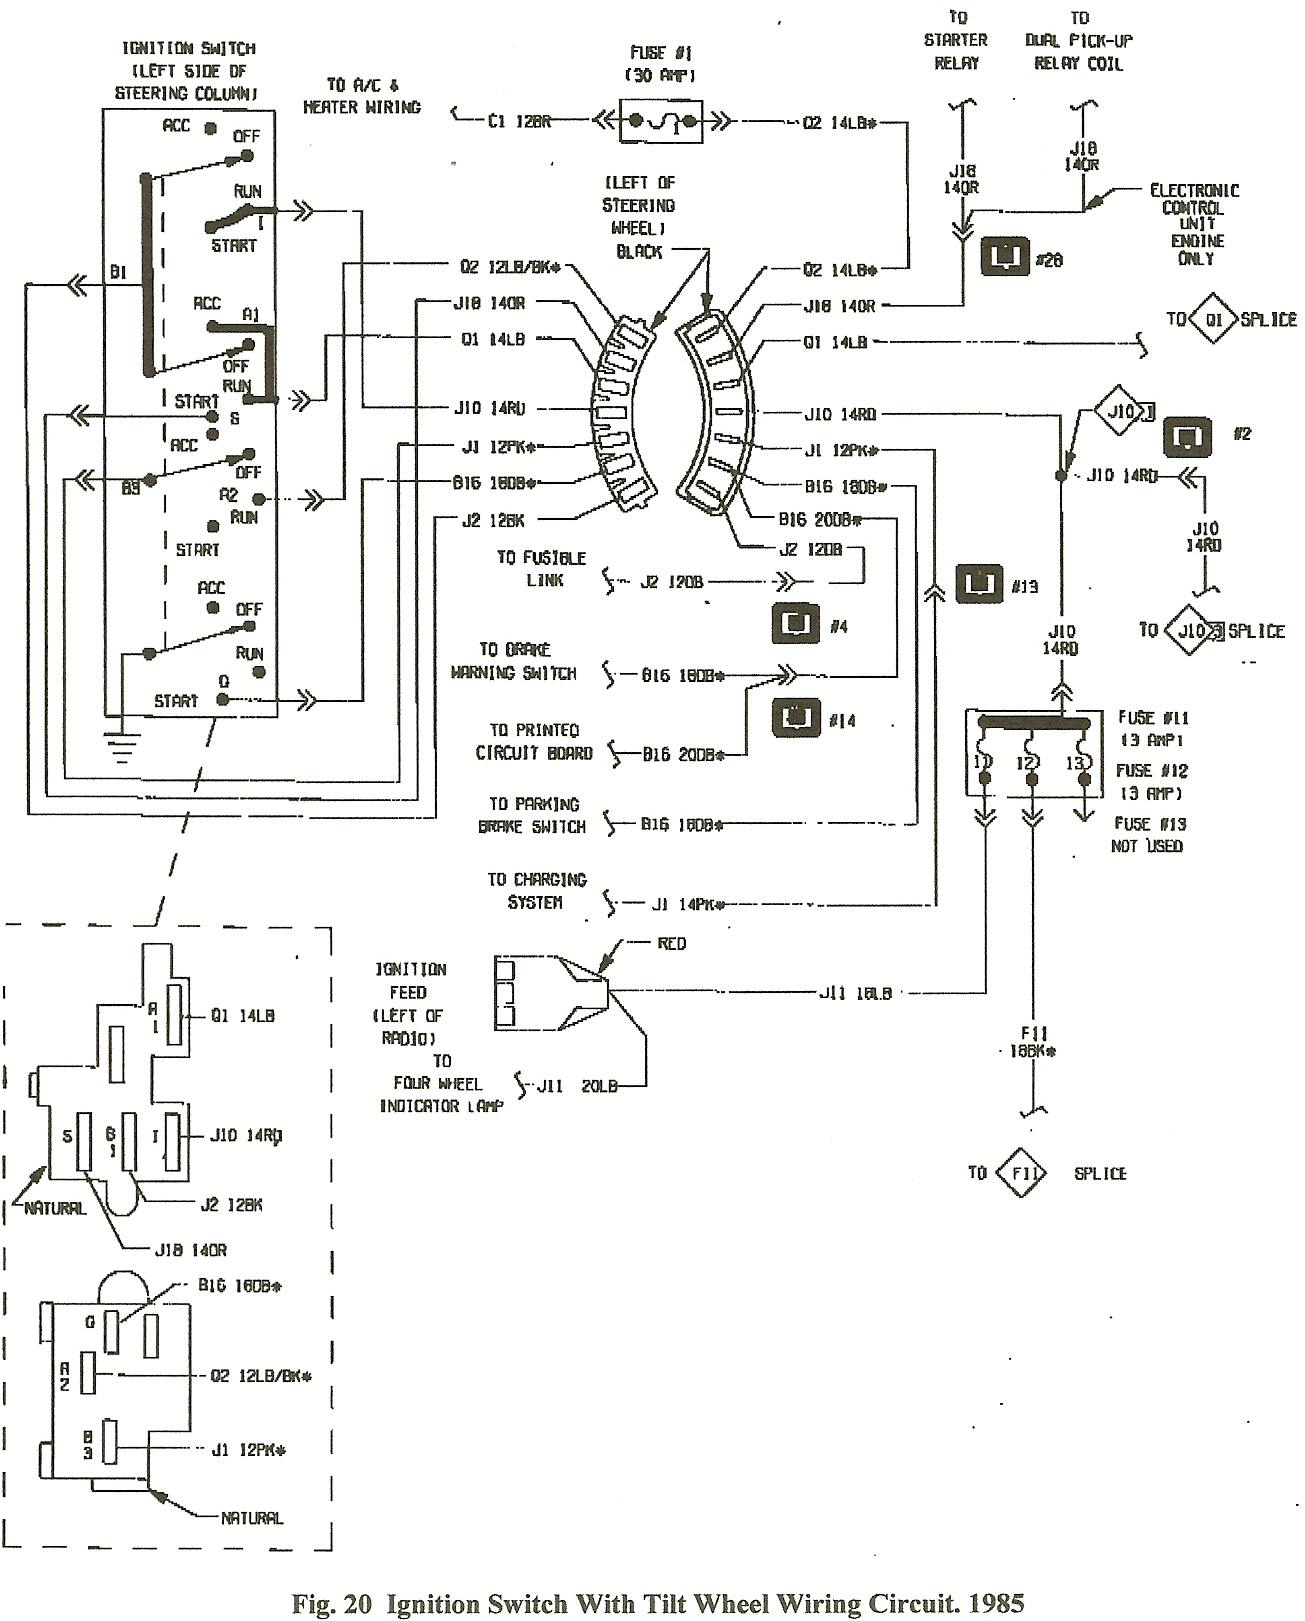 Dodge Ram Wiring | Wiring Diagram - 1999 Dodge Ram 2500 Trailer Wiring Diagram